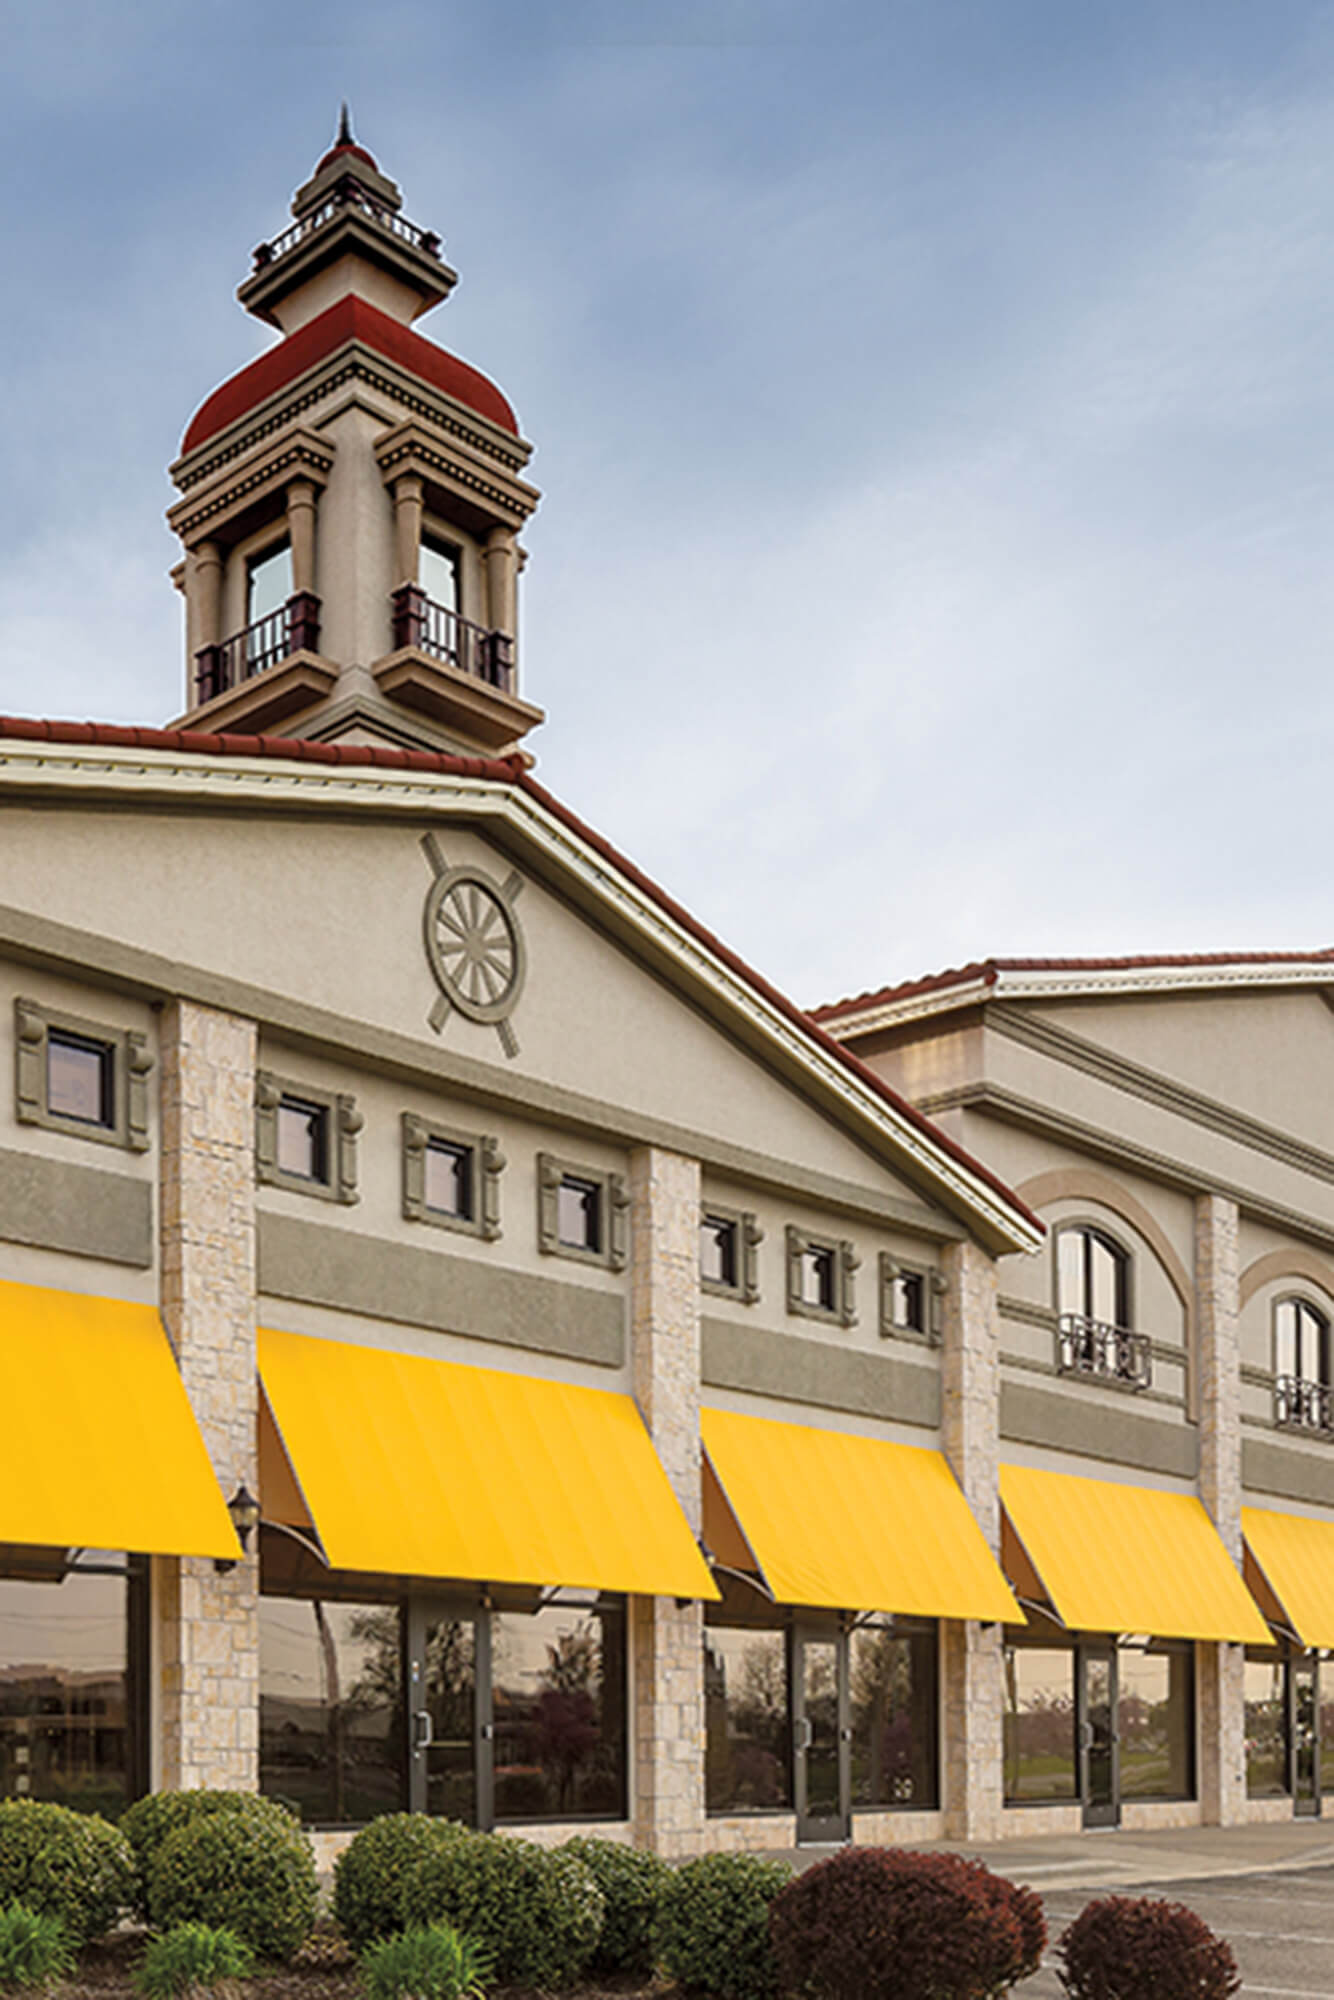 Fixed frame awnings made using yellow Sunbrella Clarity fabric makes a bold statement on a shopping center